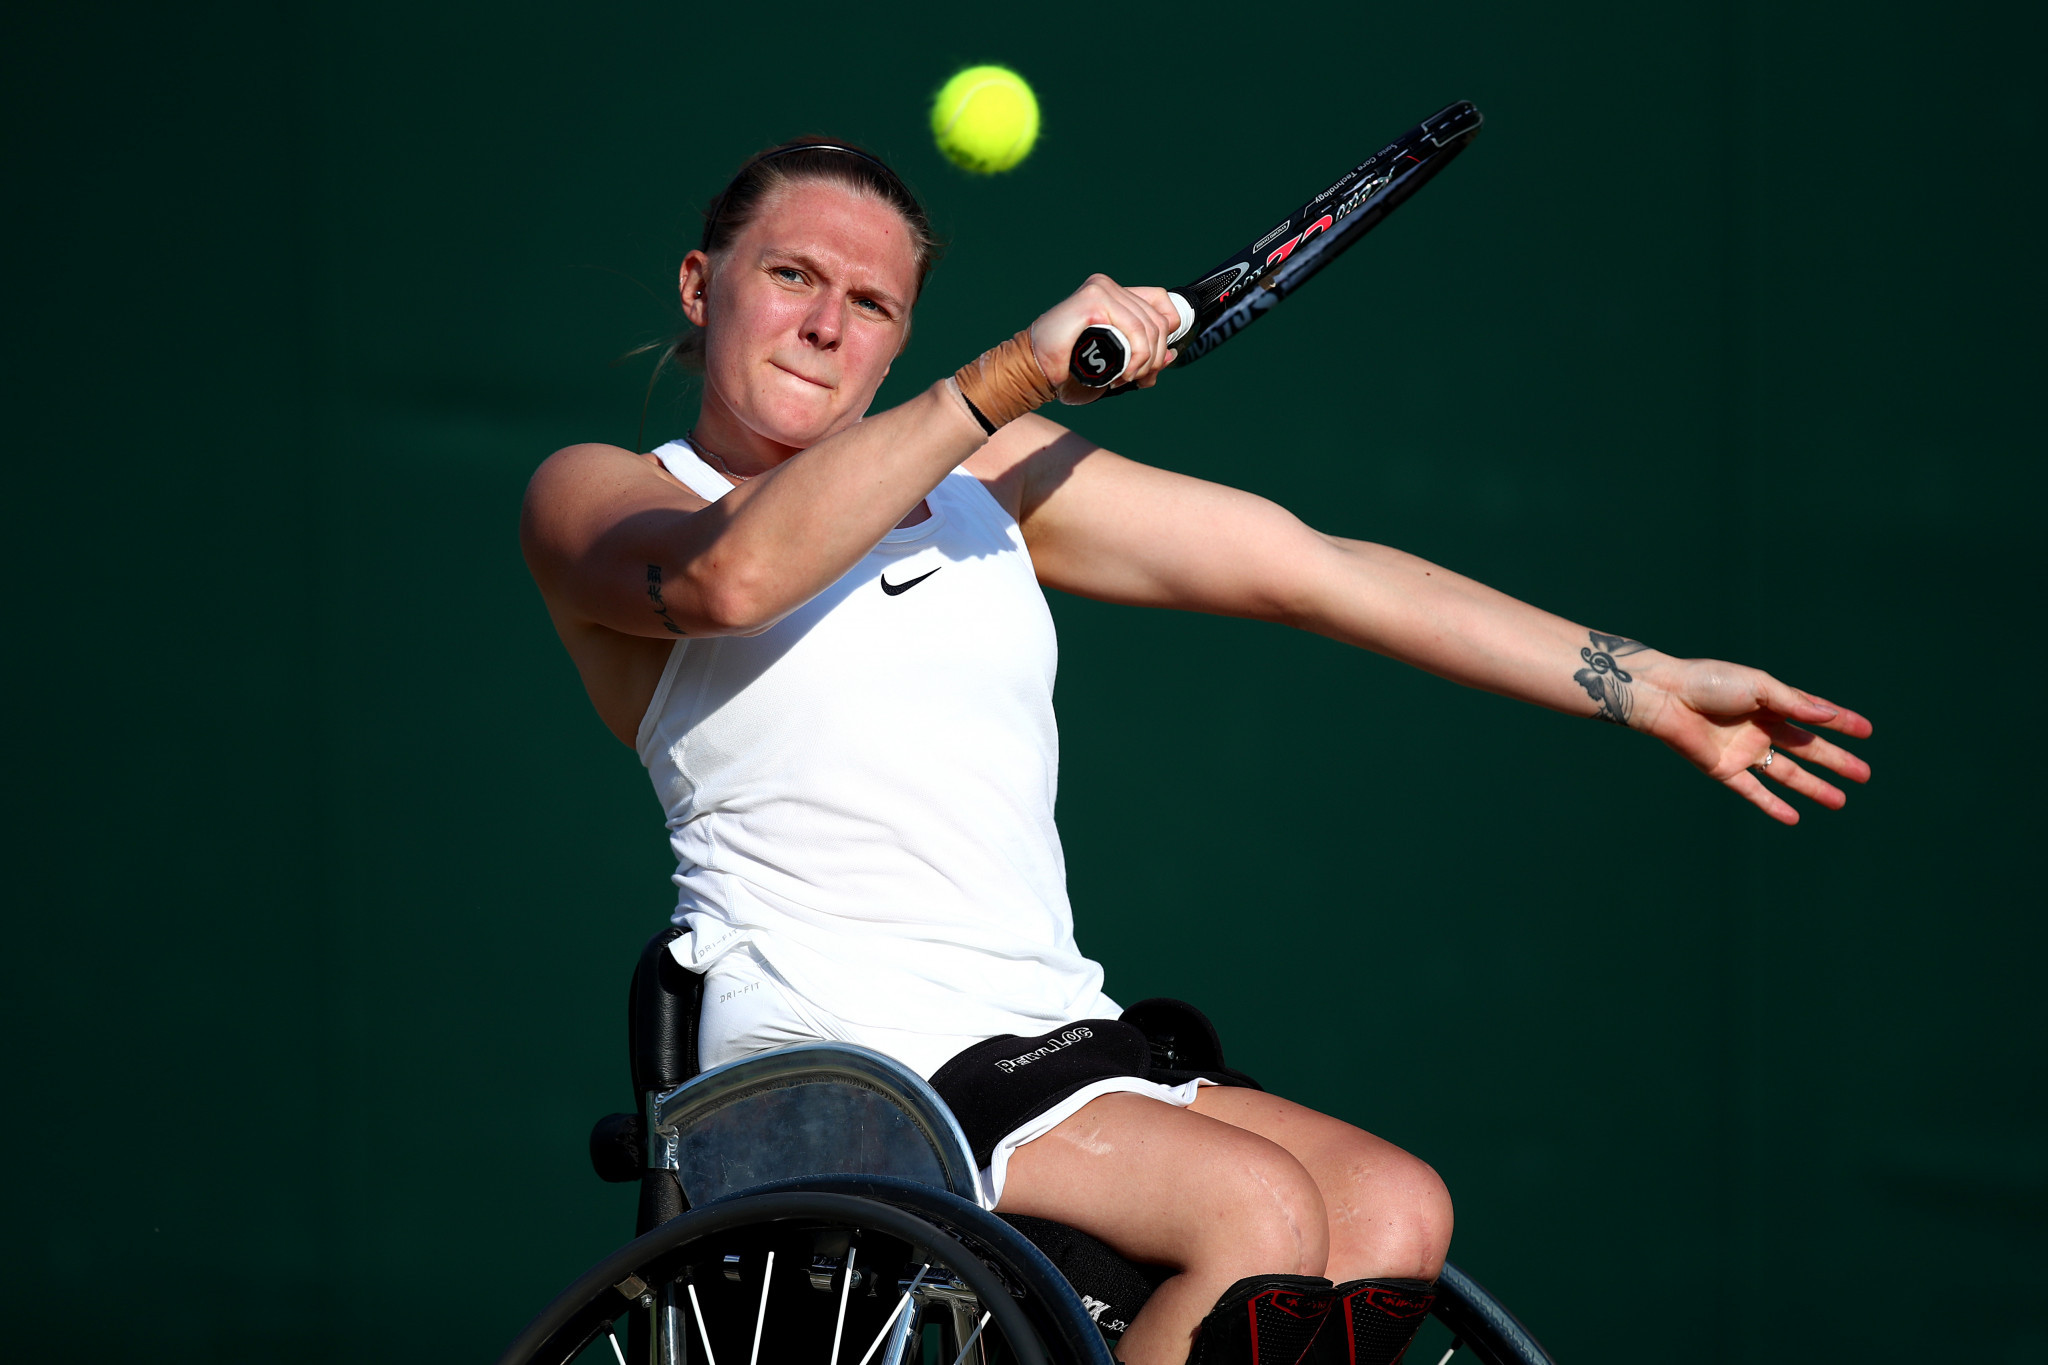 British 11-times Grand Slam winner Whiley considering retirement after Tokyo Paralympics